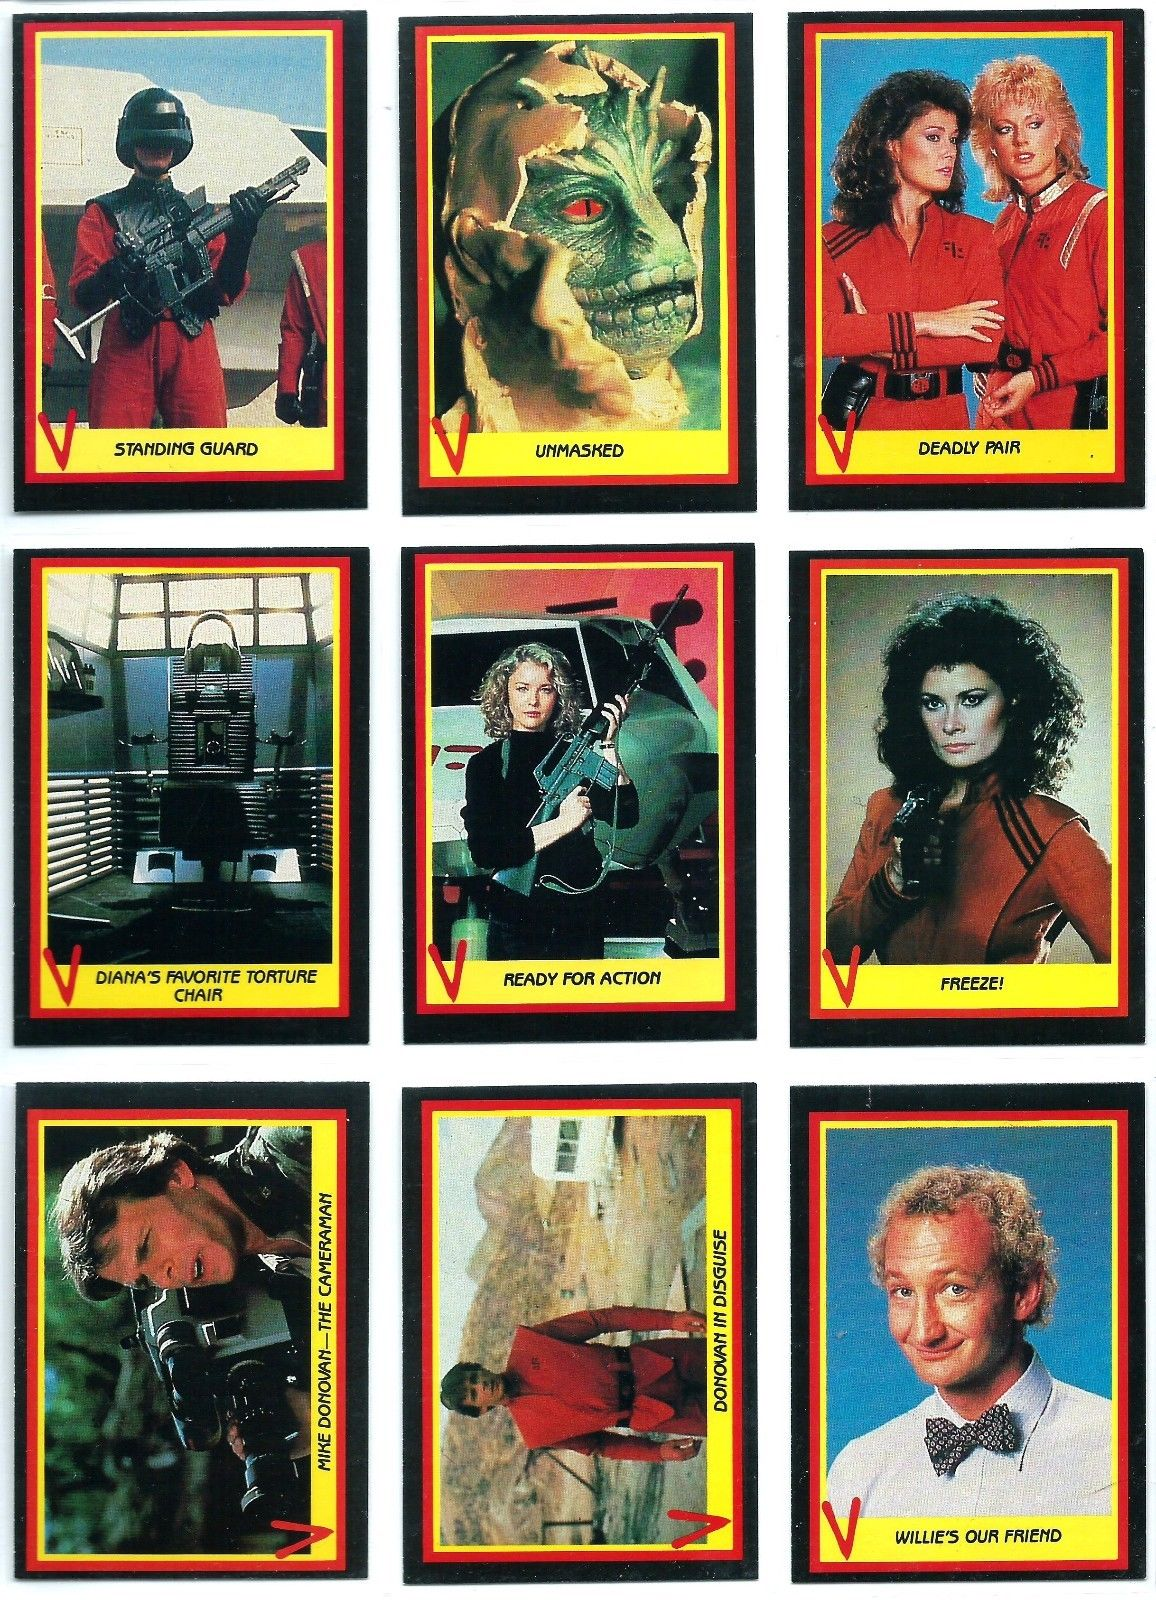 Trading Cards 2 Warps To Neptune